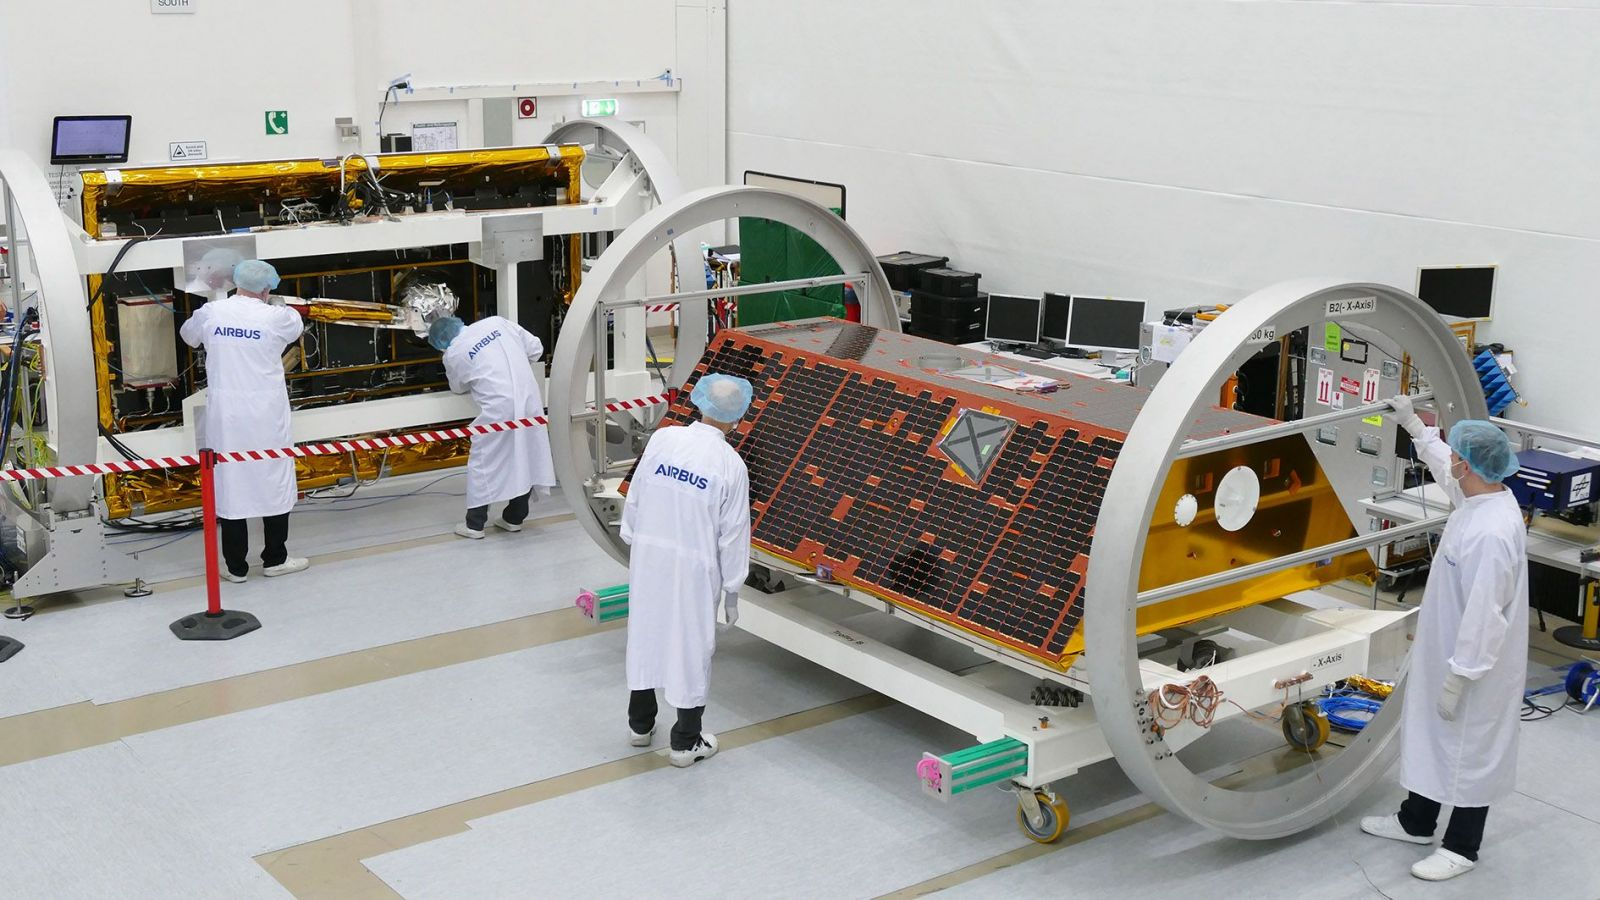 NASA's twin GRACE-FO satellites in a clean room in November 2017. Photo Credit: Mathias Pikelj / Airbus